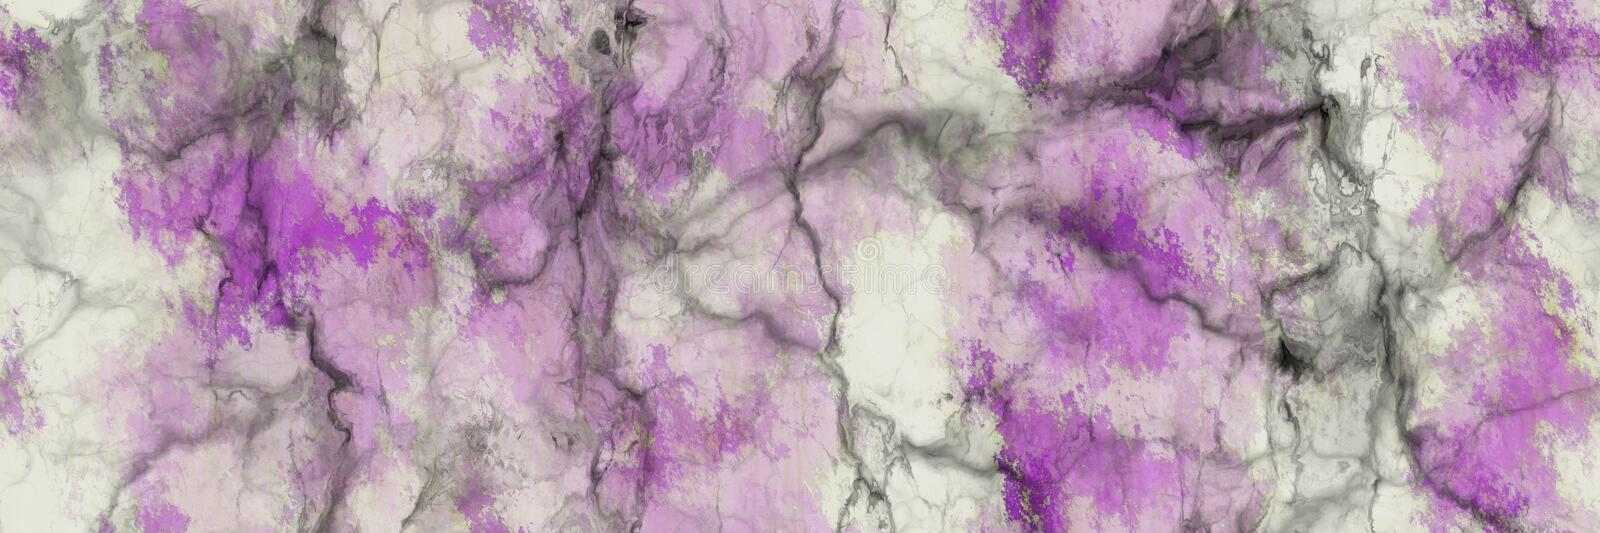 3D rendering. Marble stone seamless texture- abstract background. Marble- background texture seamless. Nature pattern- abstract surface stone. Art decorate royalty free stock photo